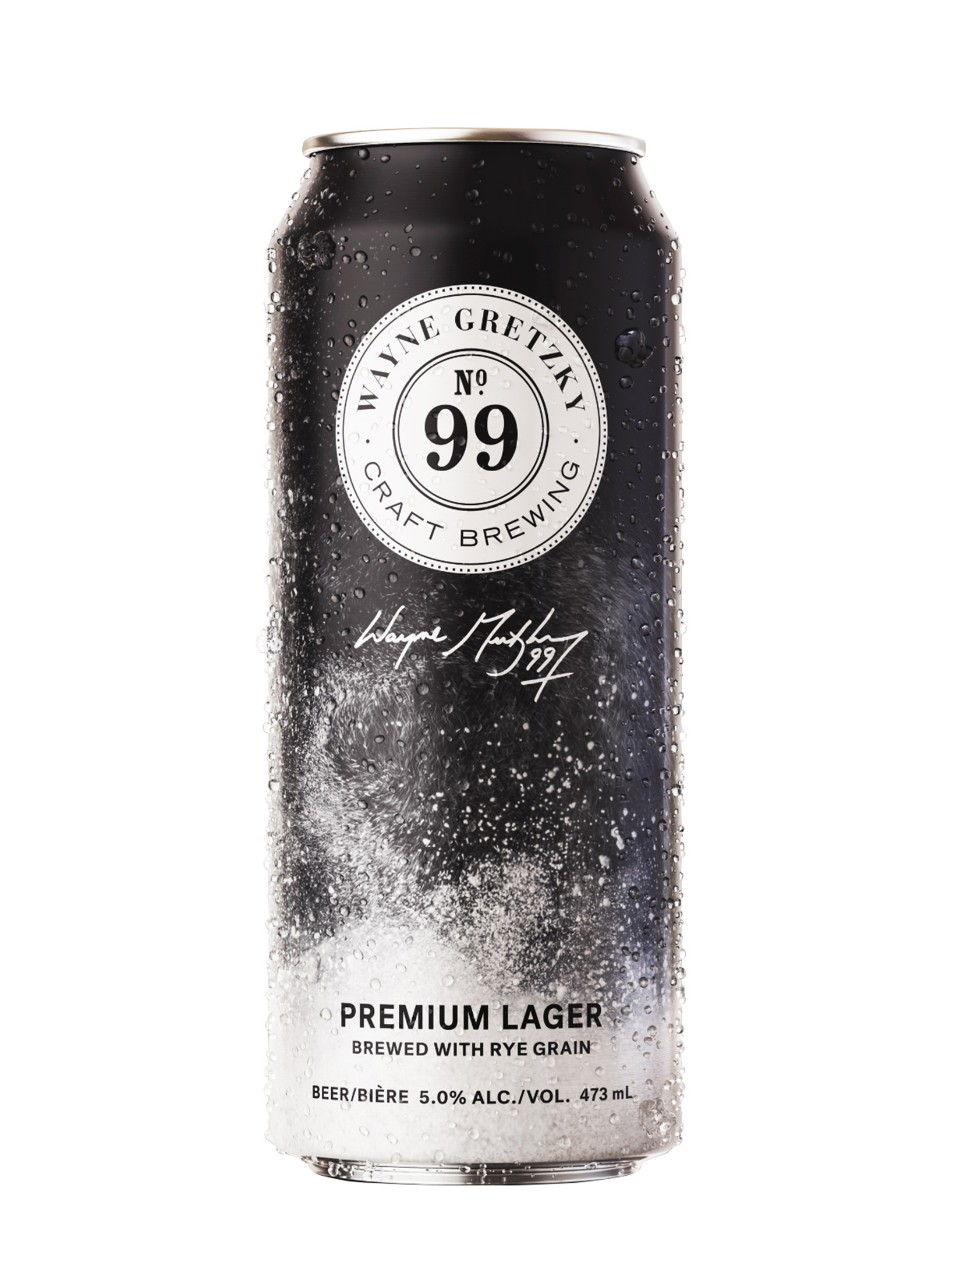 Image for No.99 Rye Lager - Wayne Gretzky Craft Brewing from LCBO